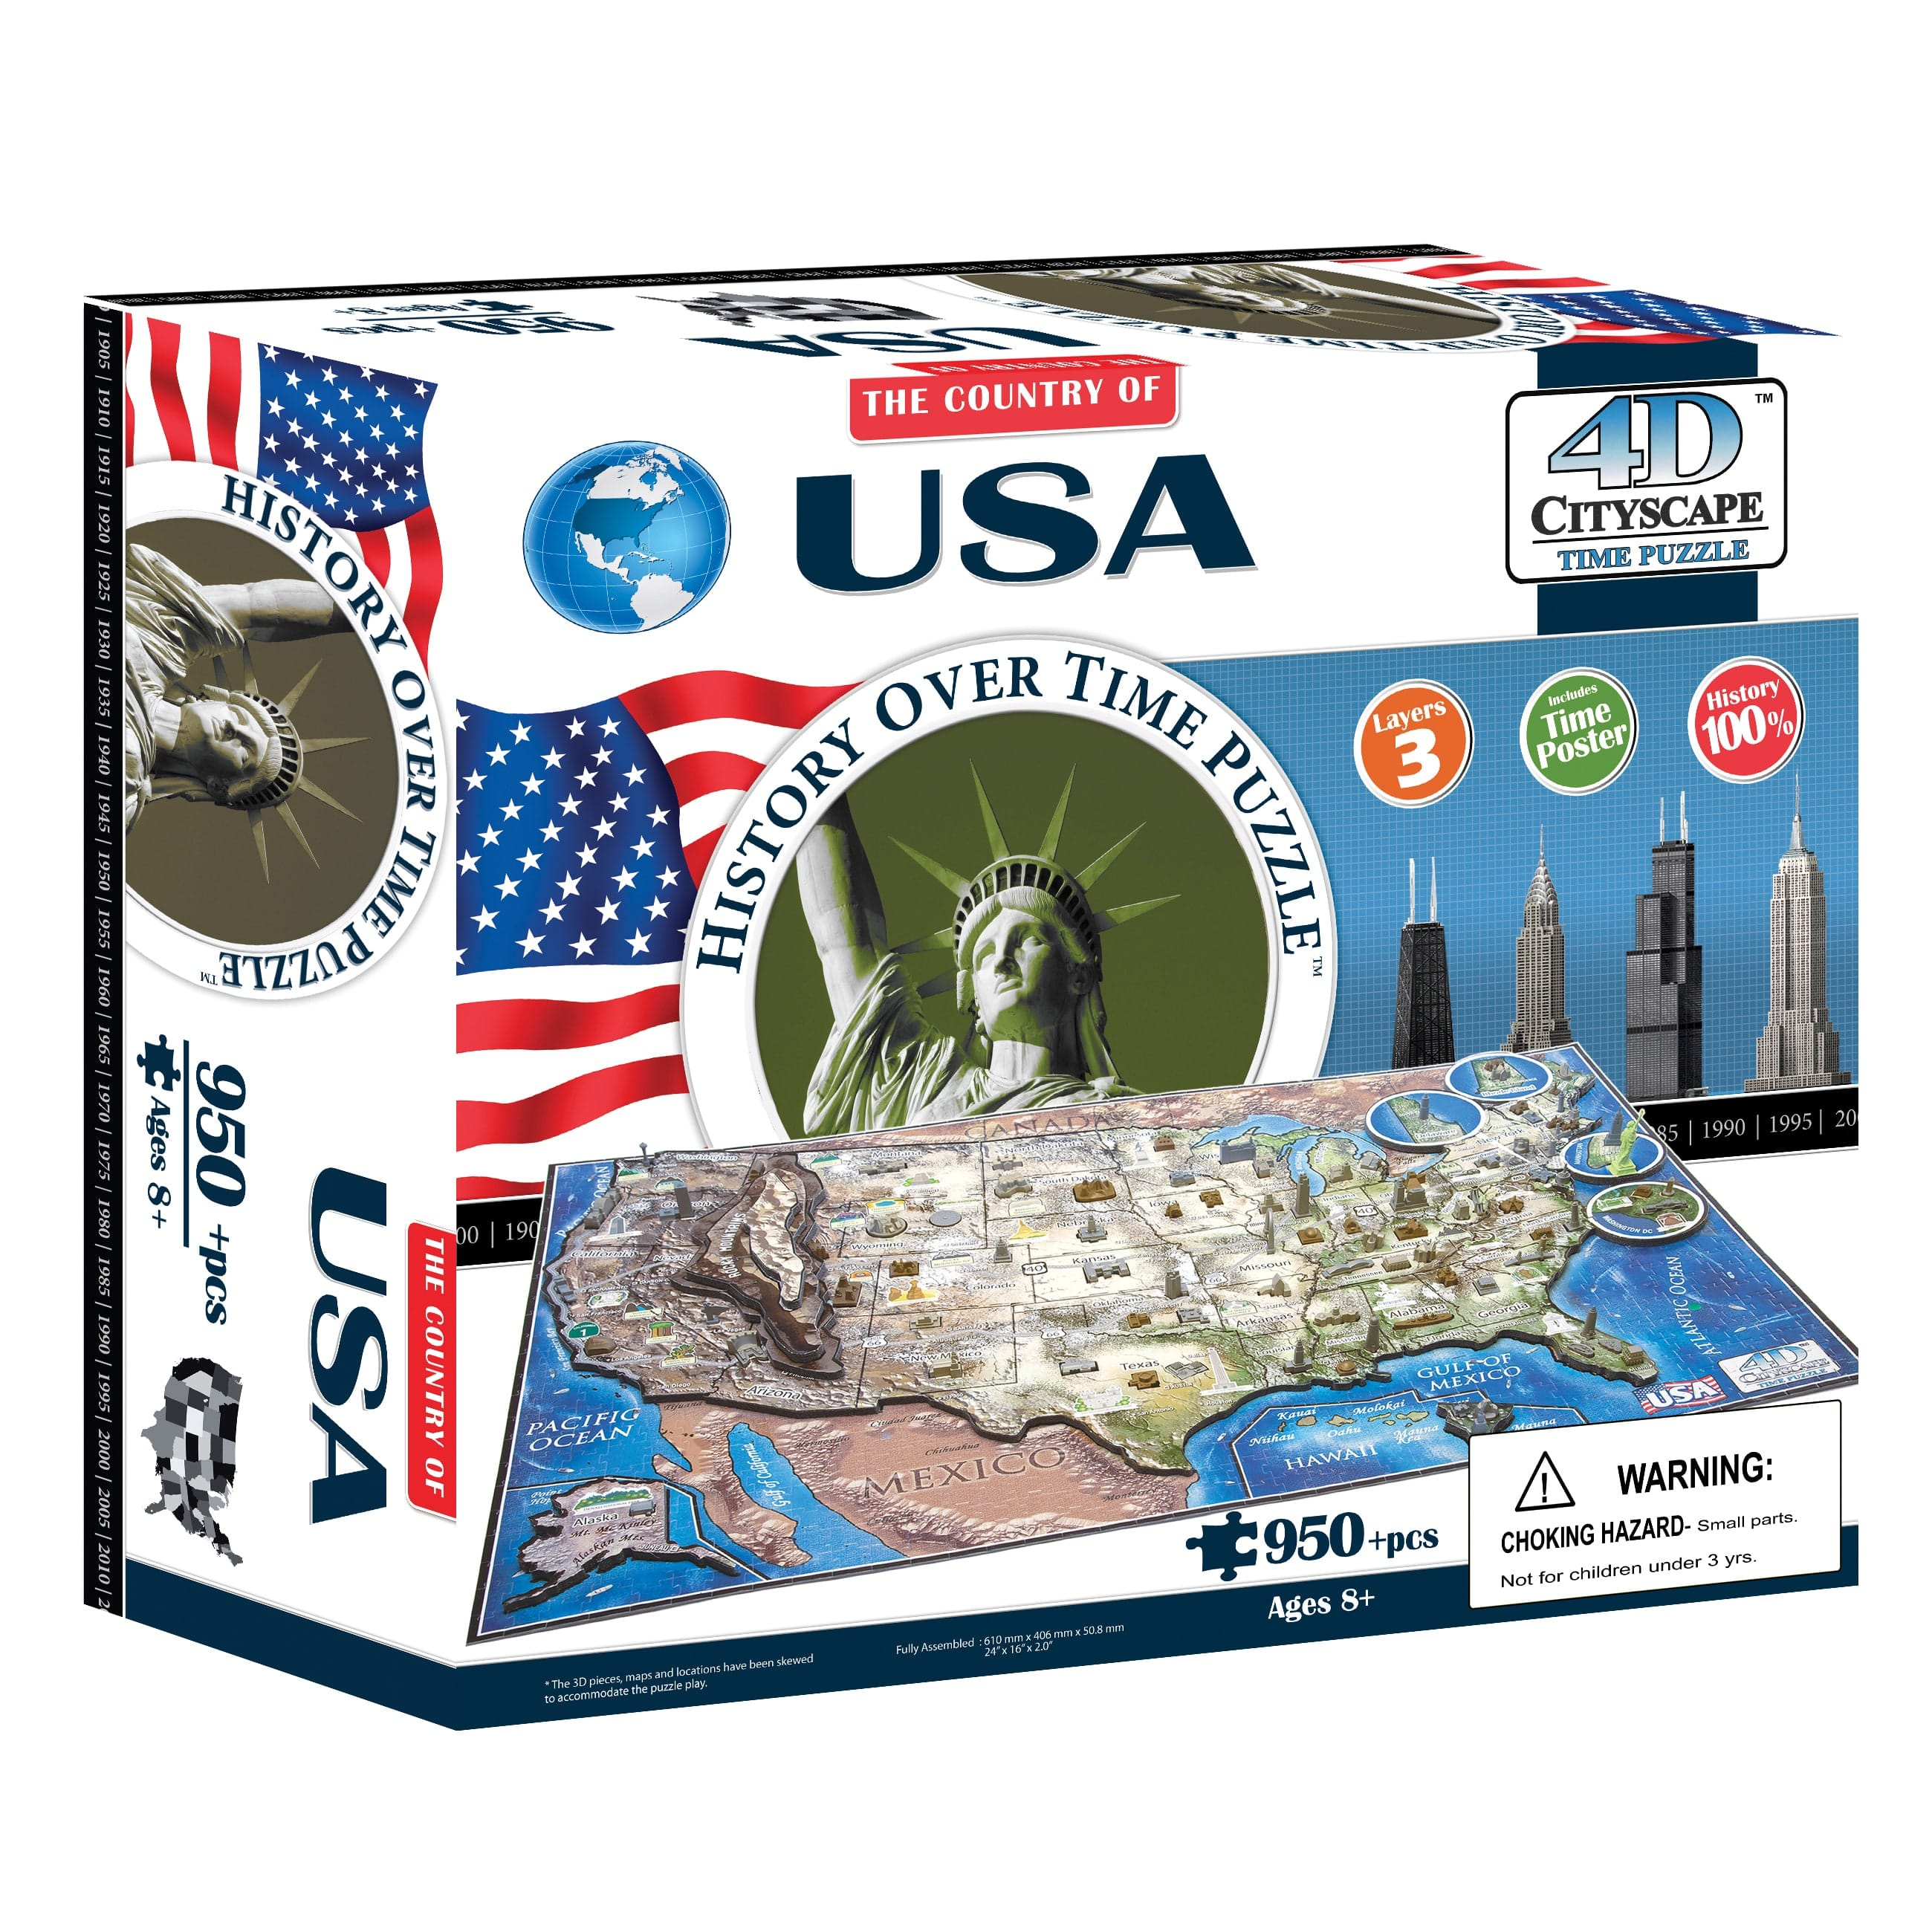 4D Cityscape 950-Piece USA History Time Puzzle $23 + Free shipping via Prime or w/ $25